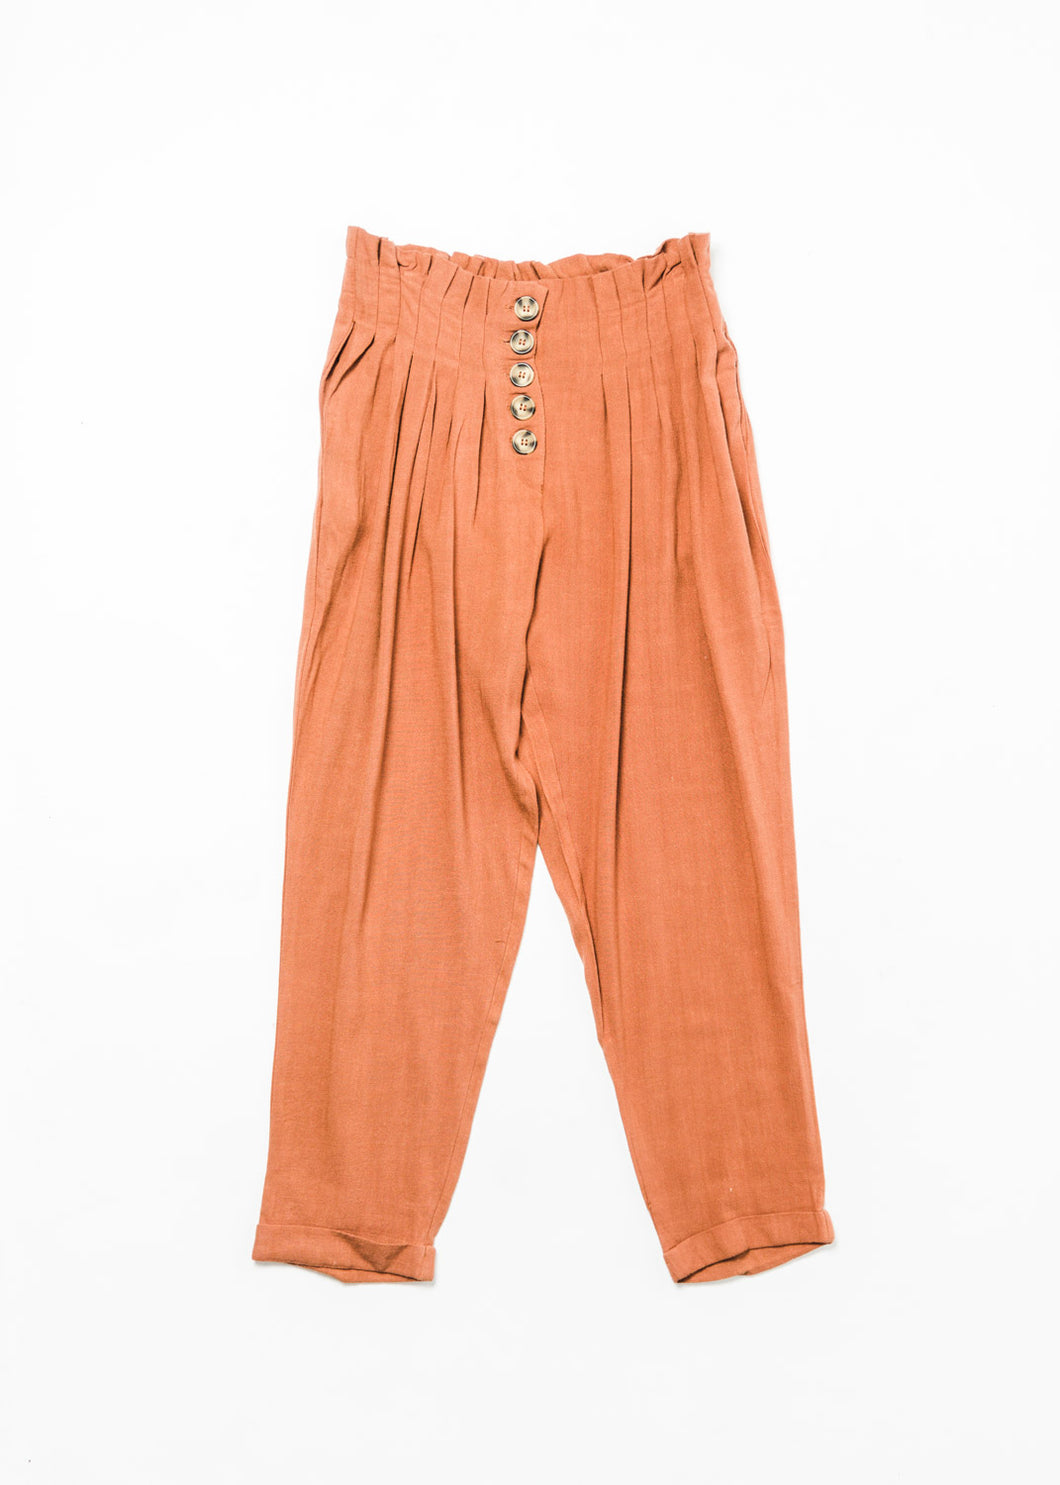 NATIVE YOUTH KNOWLES PANT